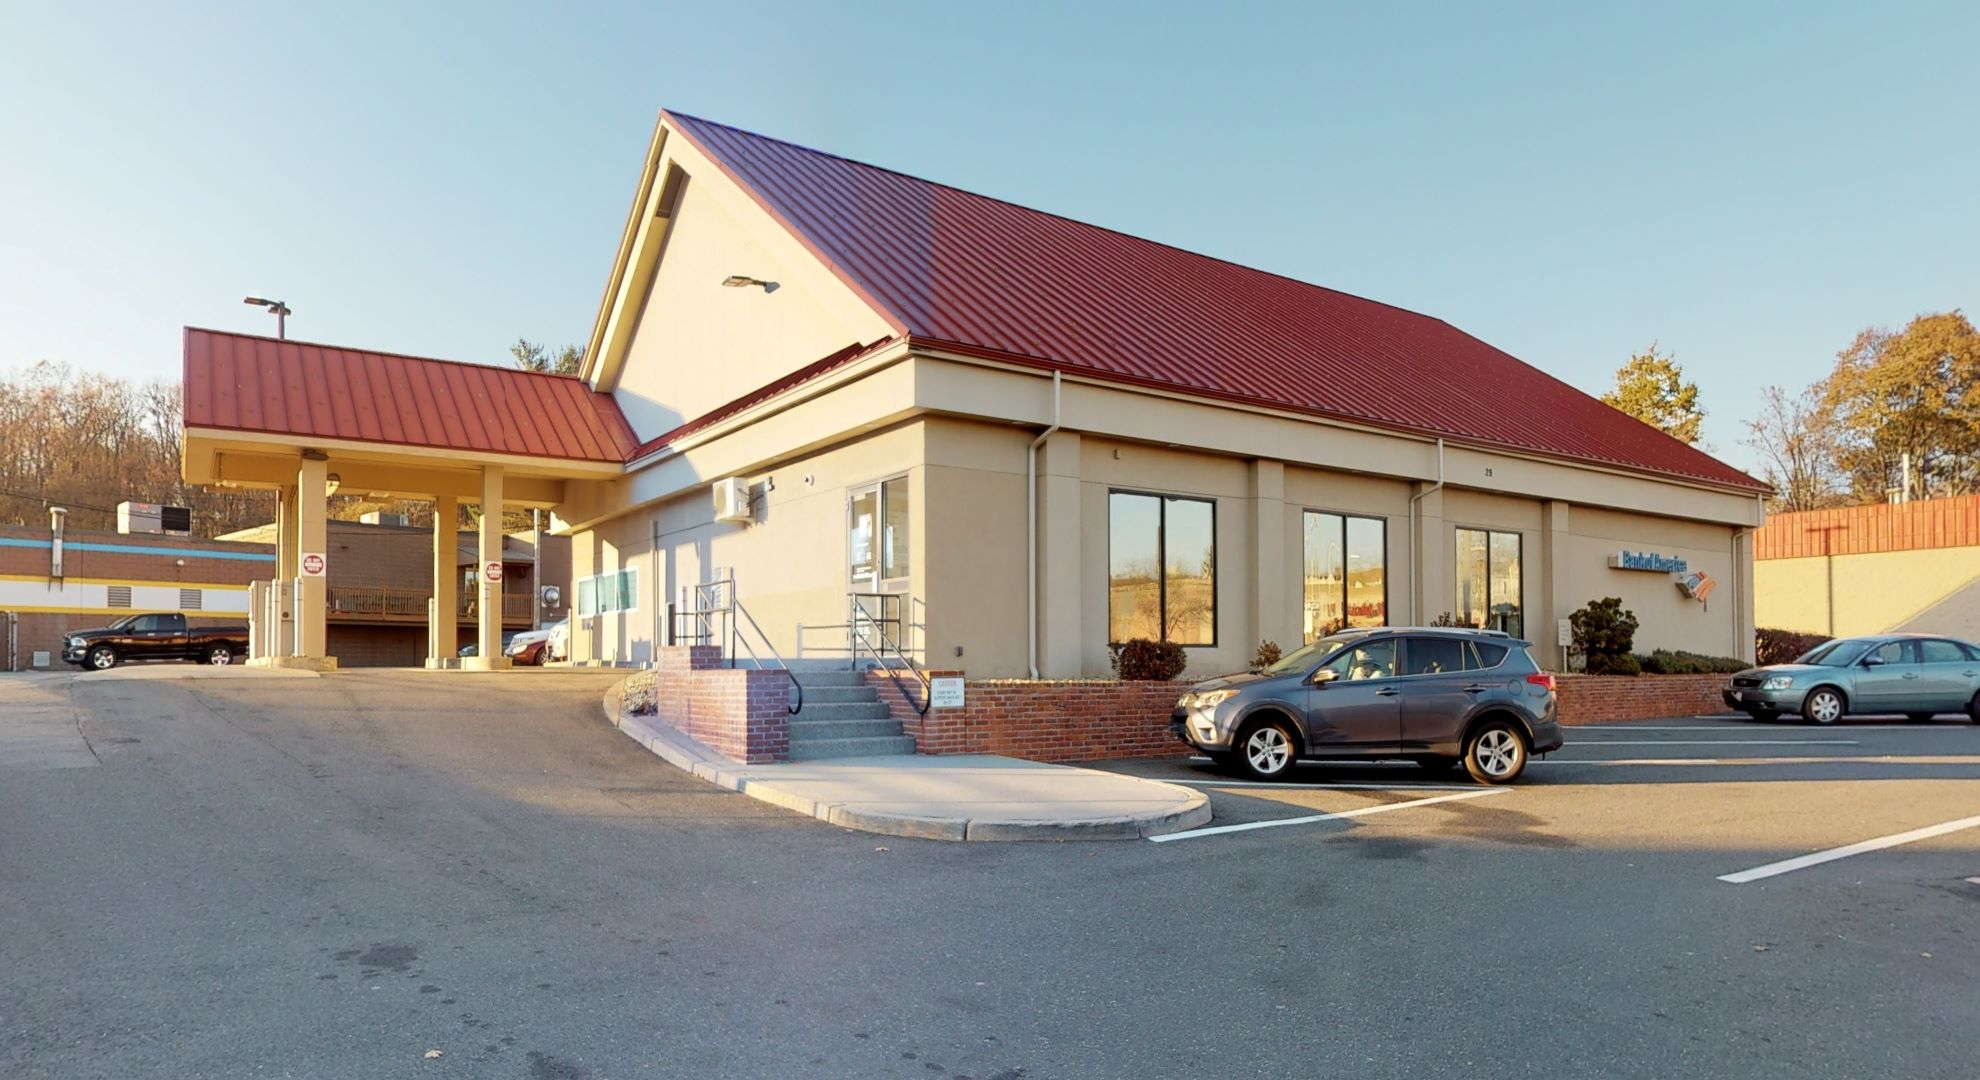 Bank of America financial center with drive-thru ATM | 29 W Boylston St, Worcester, MA 01605